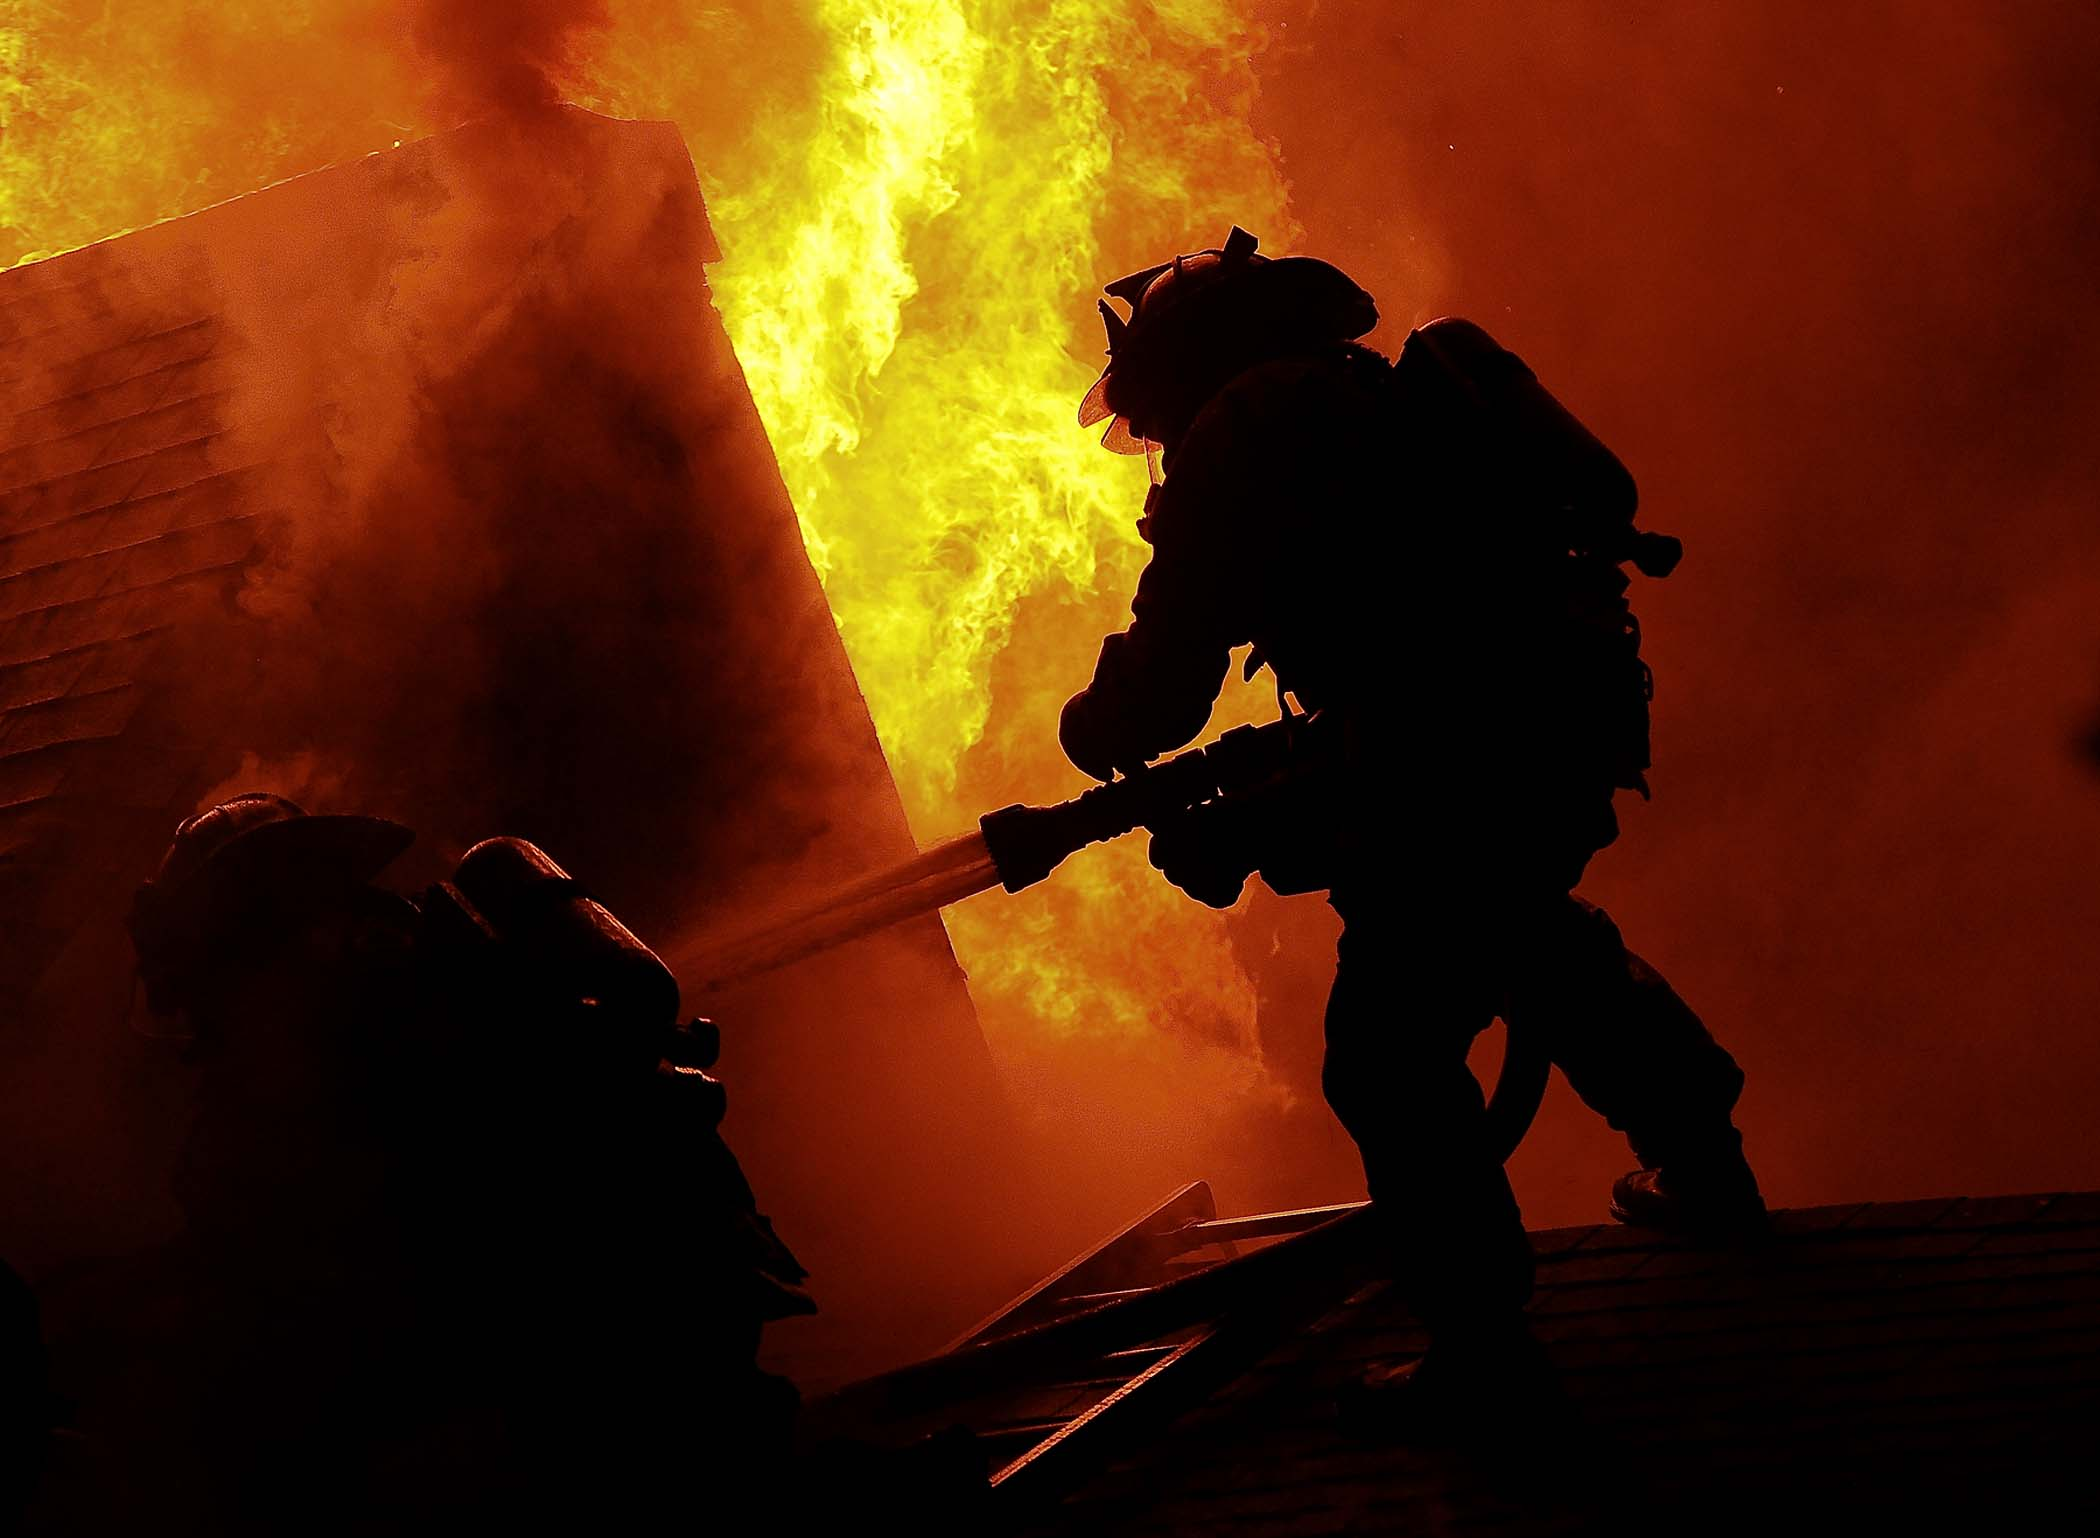 Firefighter Wallpapers Navy Seal